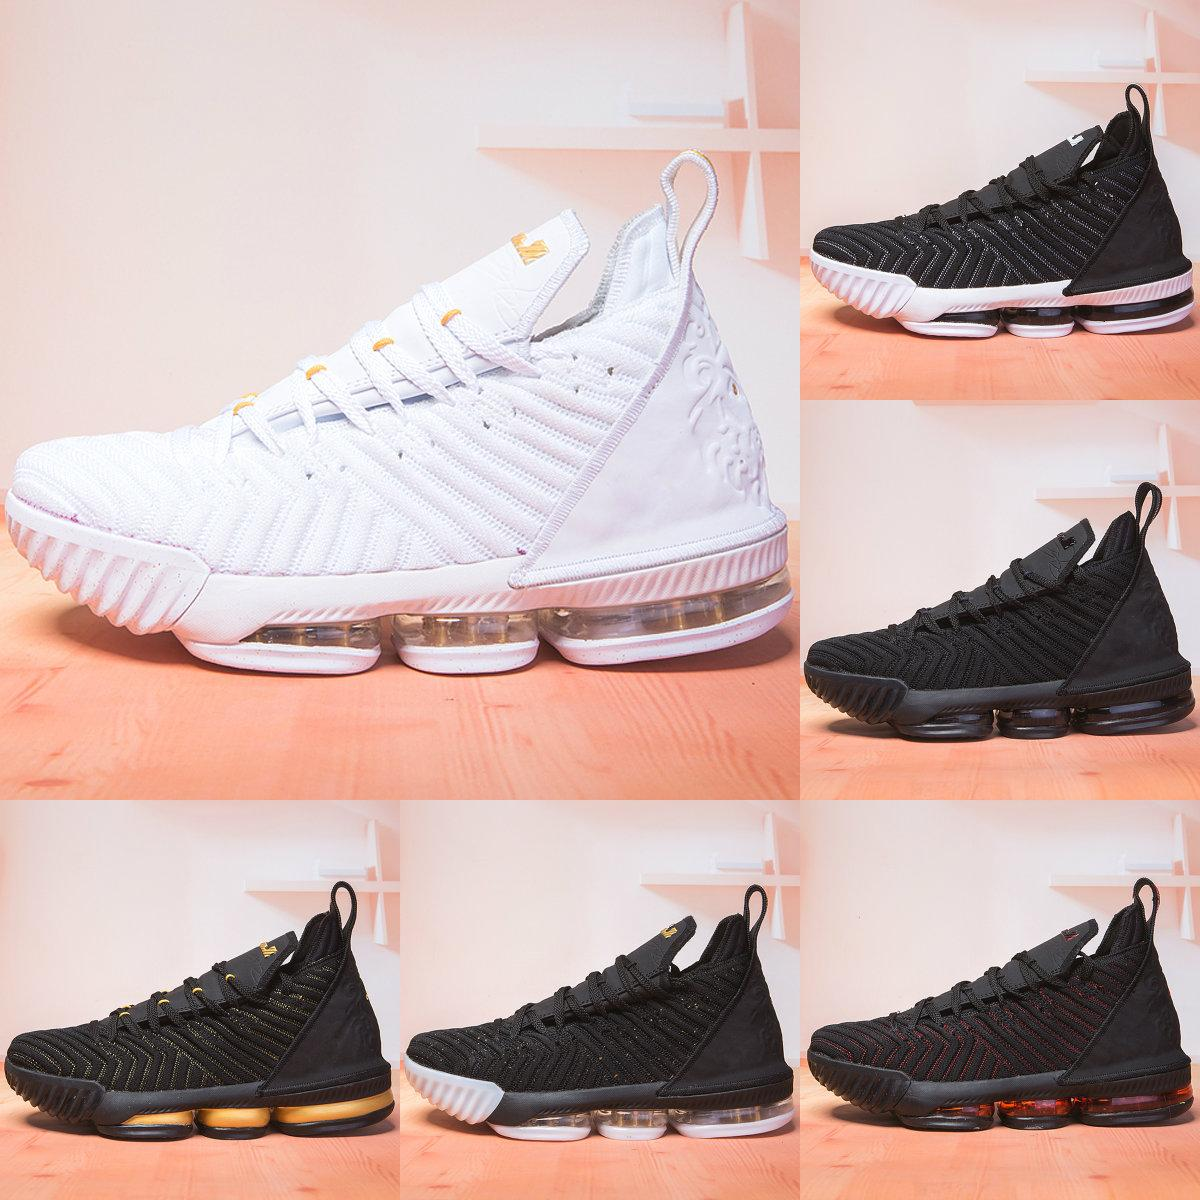 huge discount 48835 0e542 Youth Ashes Ghost Lebron 16 White Black Lebrons Mens Basketball Shoes  Training Arrival Sports Sneakers XVI Trainer Shoe James Good Kids Shoes  Black Tennis ...